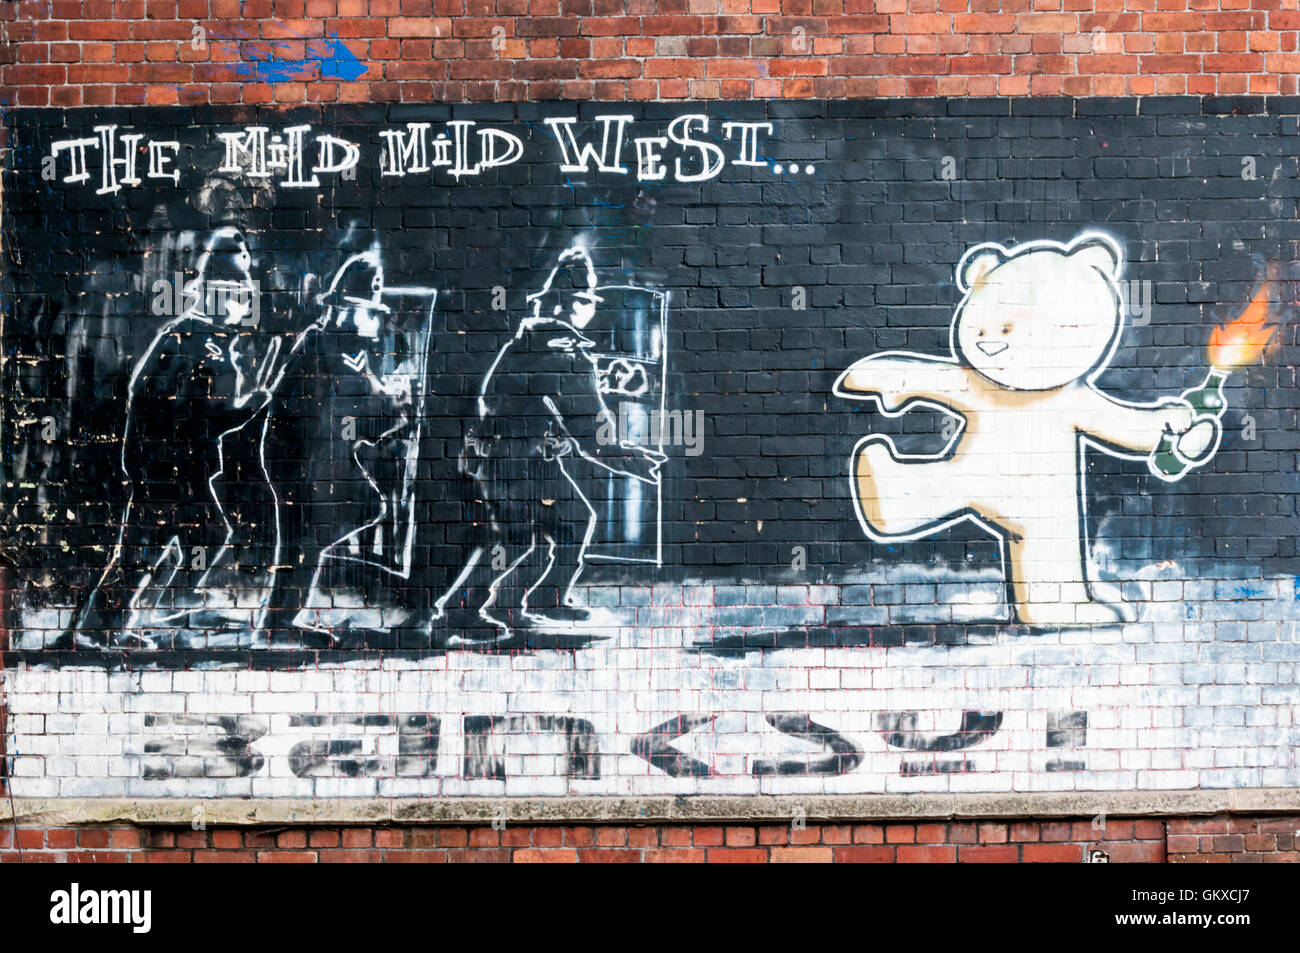 Mild Mild West graffiti by Banksy in the Stokes Croft area of Bristol. - Stock Image